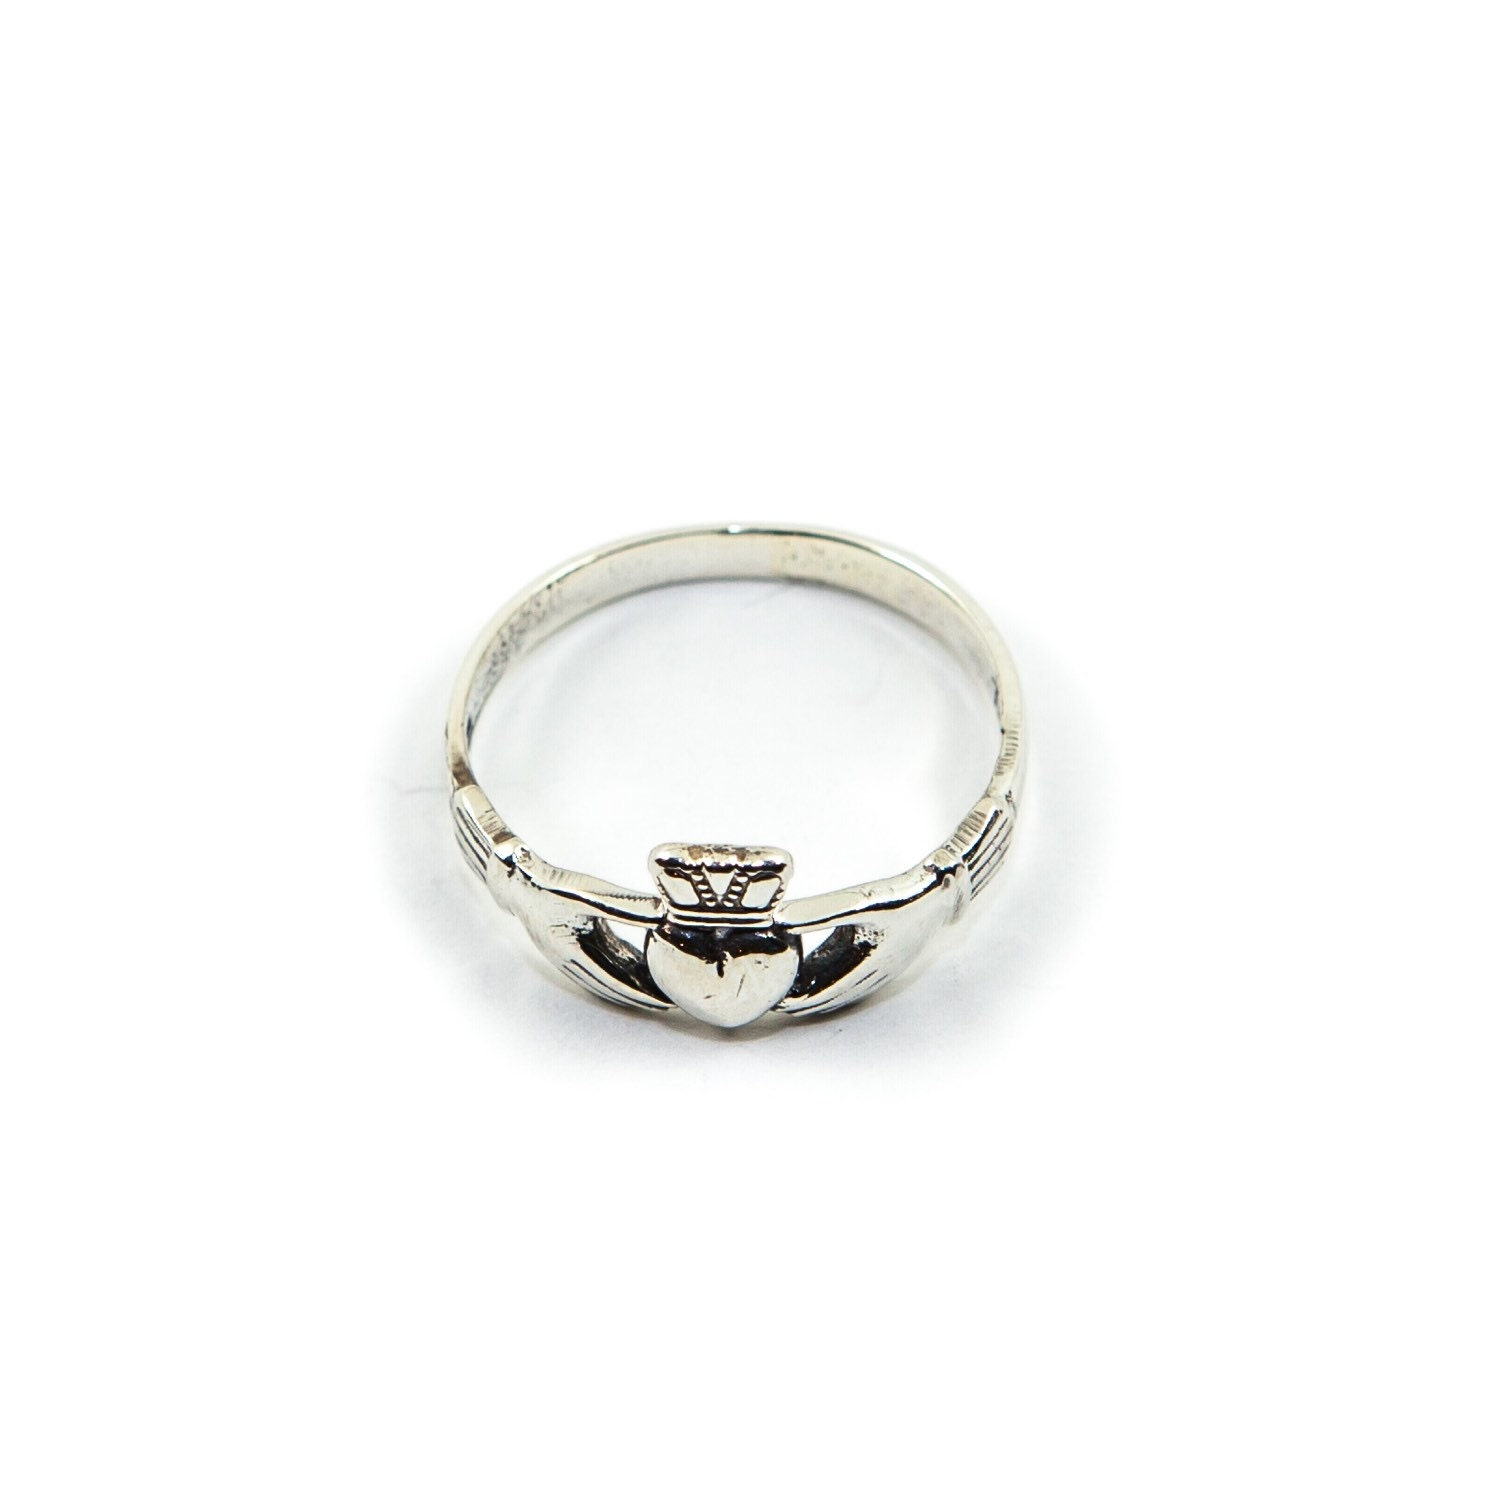 dainty claddagh ring 925 sterling silver. Black Bedroom Furniture Sets. Home Design Ideas